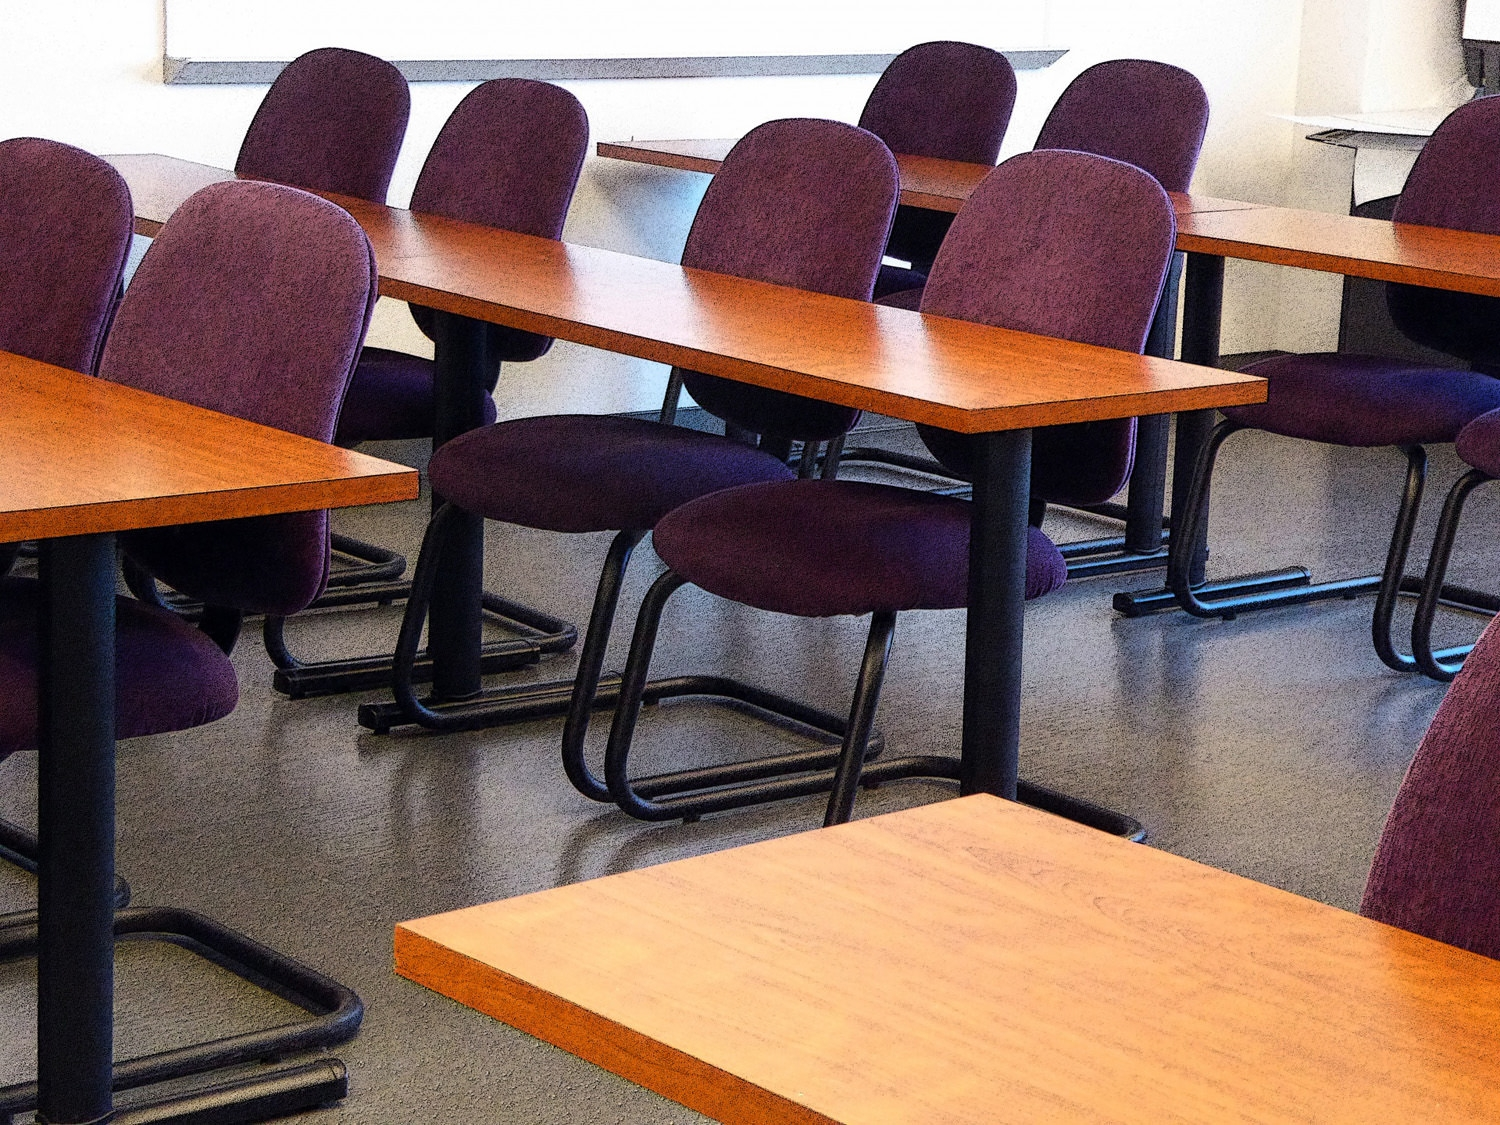 classroom-tables-and-chairs2_COLLEGE_CLASSROOM_MANAGEMENT/www.chrisjhallsc.com